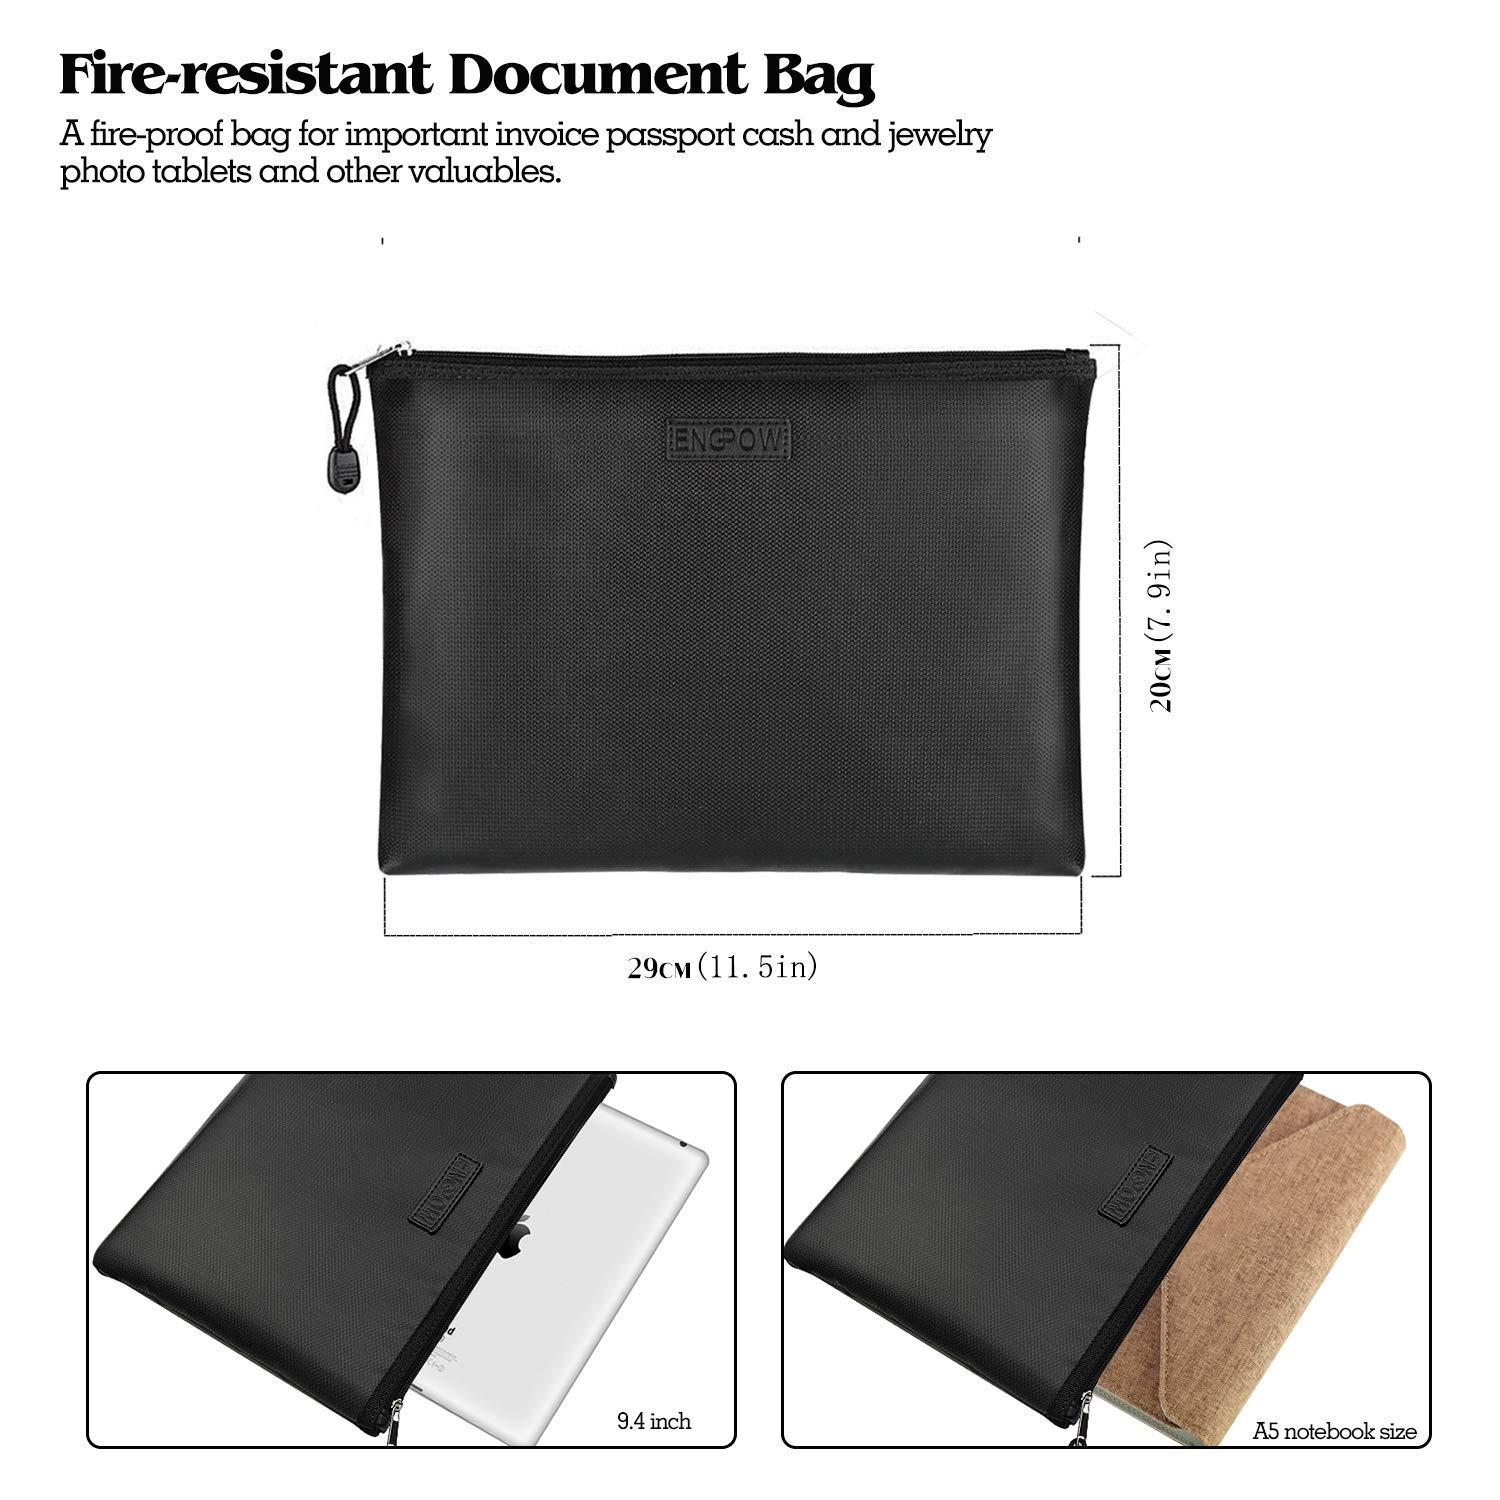 ENGPOW Fireproof Money Bag/Silicone Coated Fire Water Resistant for Document, Securit Bank Deposit with Utility Zipper Coin Bag,11.5X7.9 inches Check Wallet,Black by ENGPOW (Image #6)